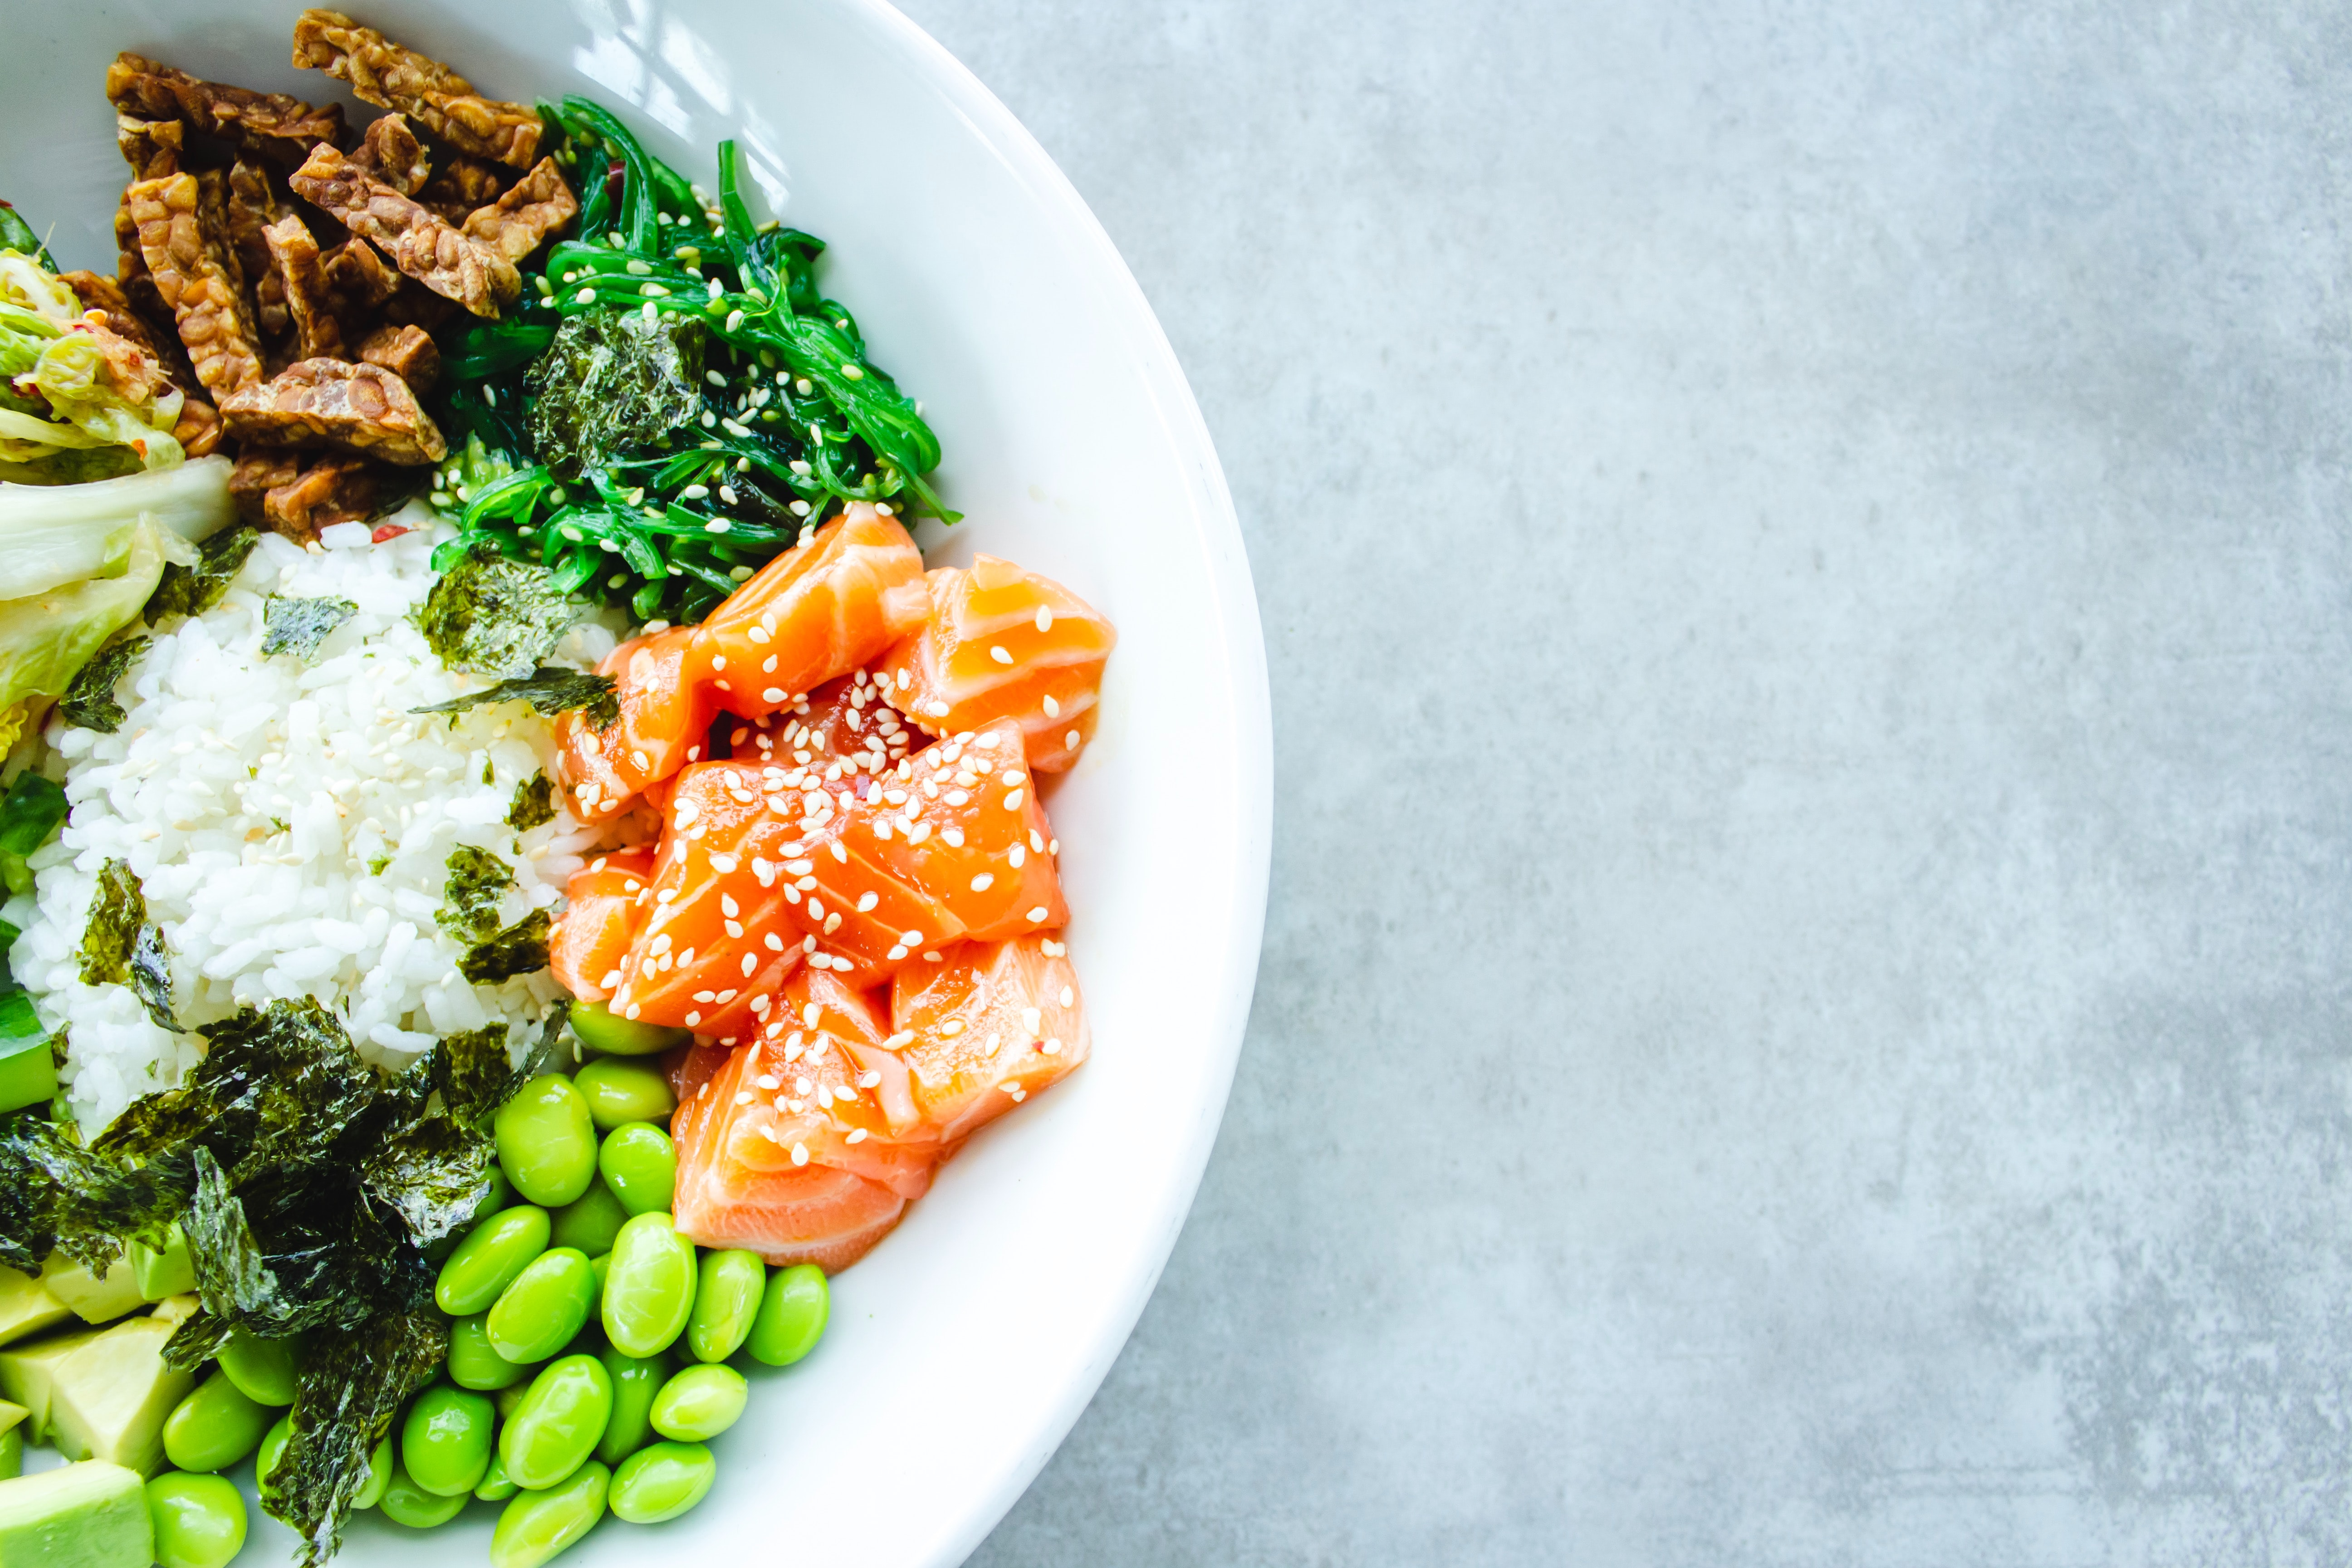 Plate with salmon, different green vegetables and some rice.